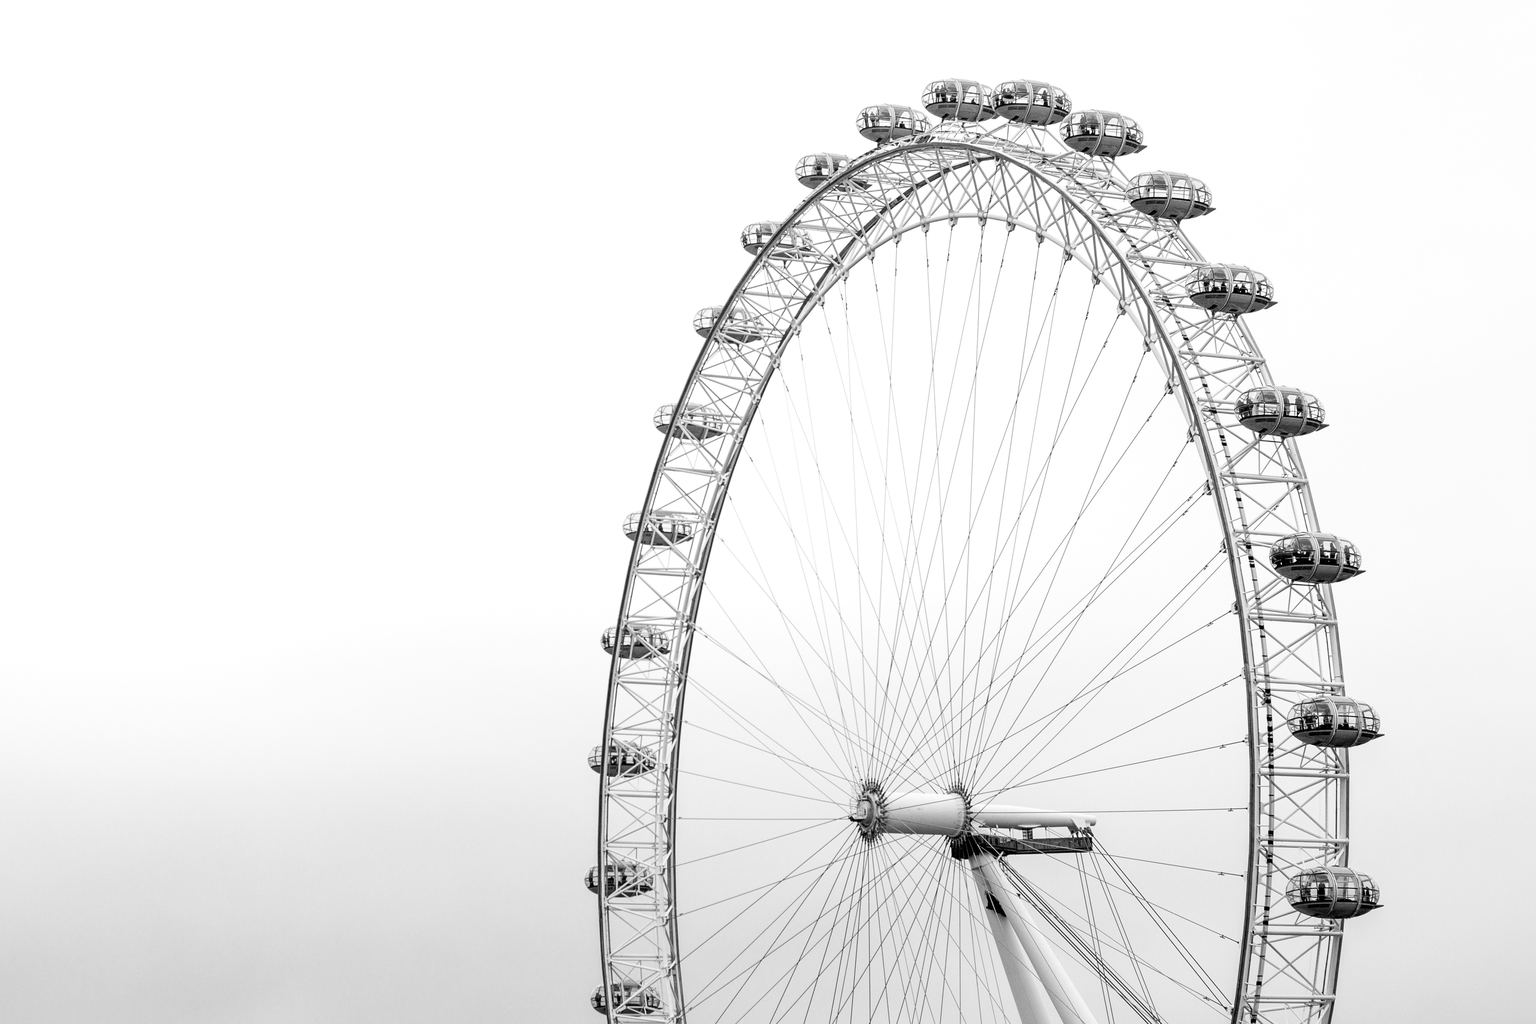 ferris wheel, london eye, england, london, tourist destination, attraction